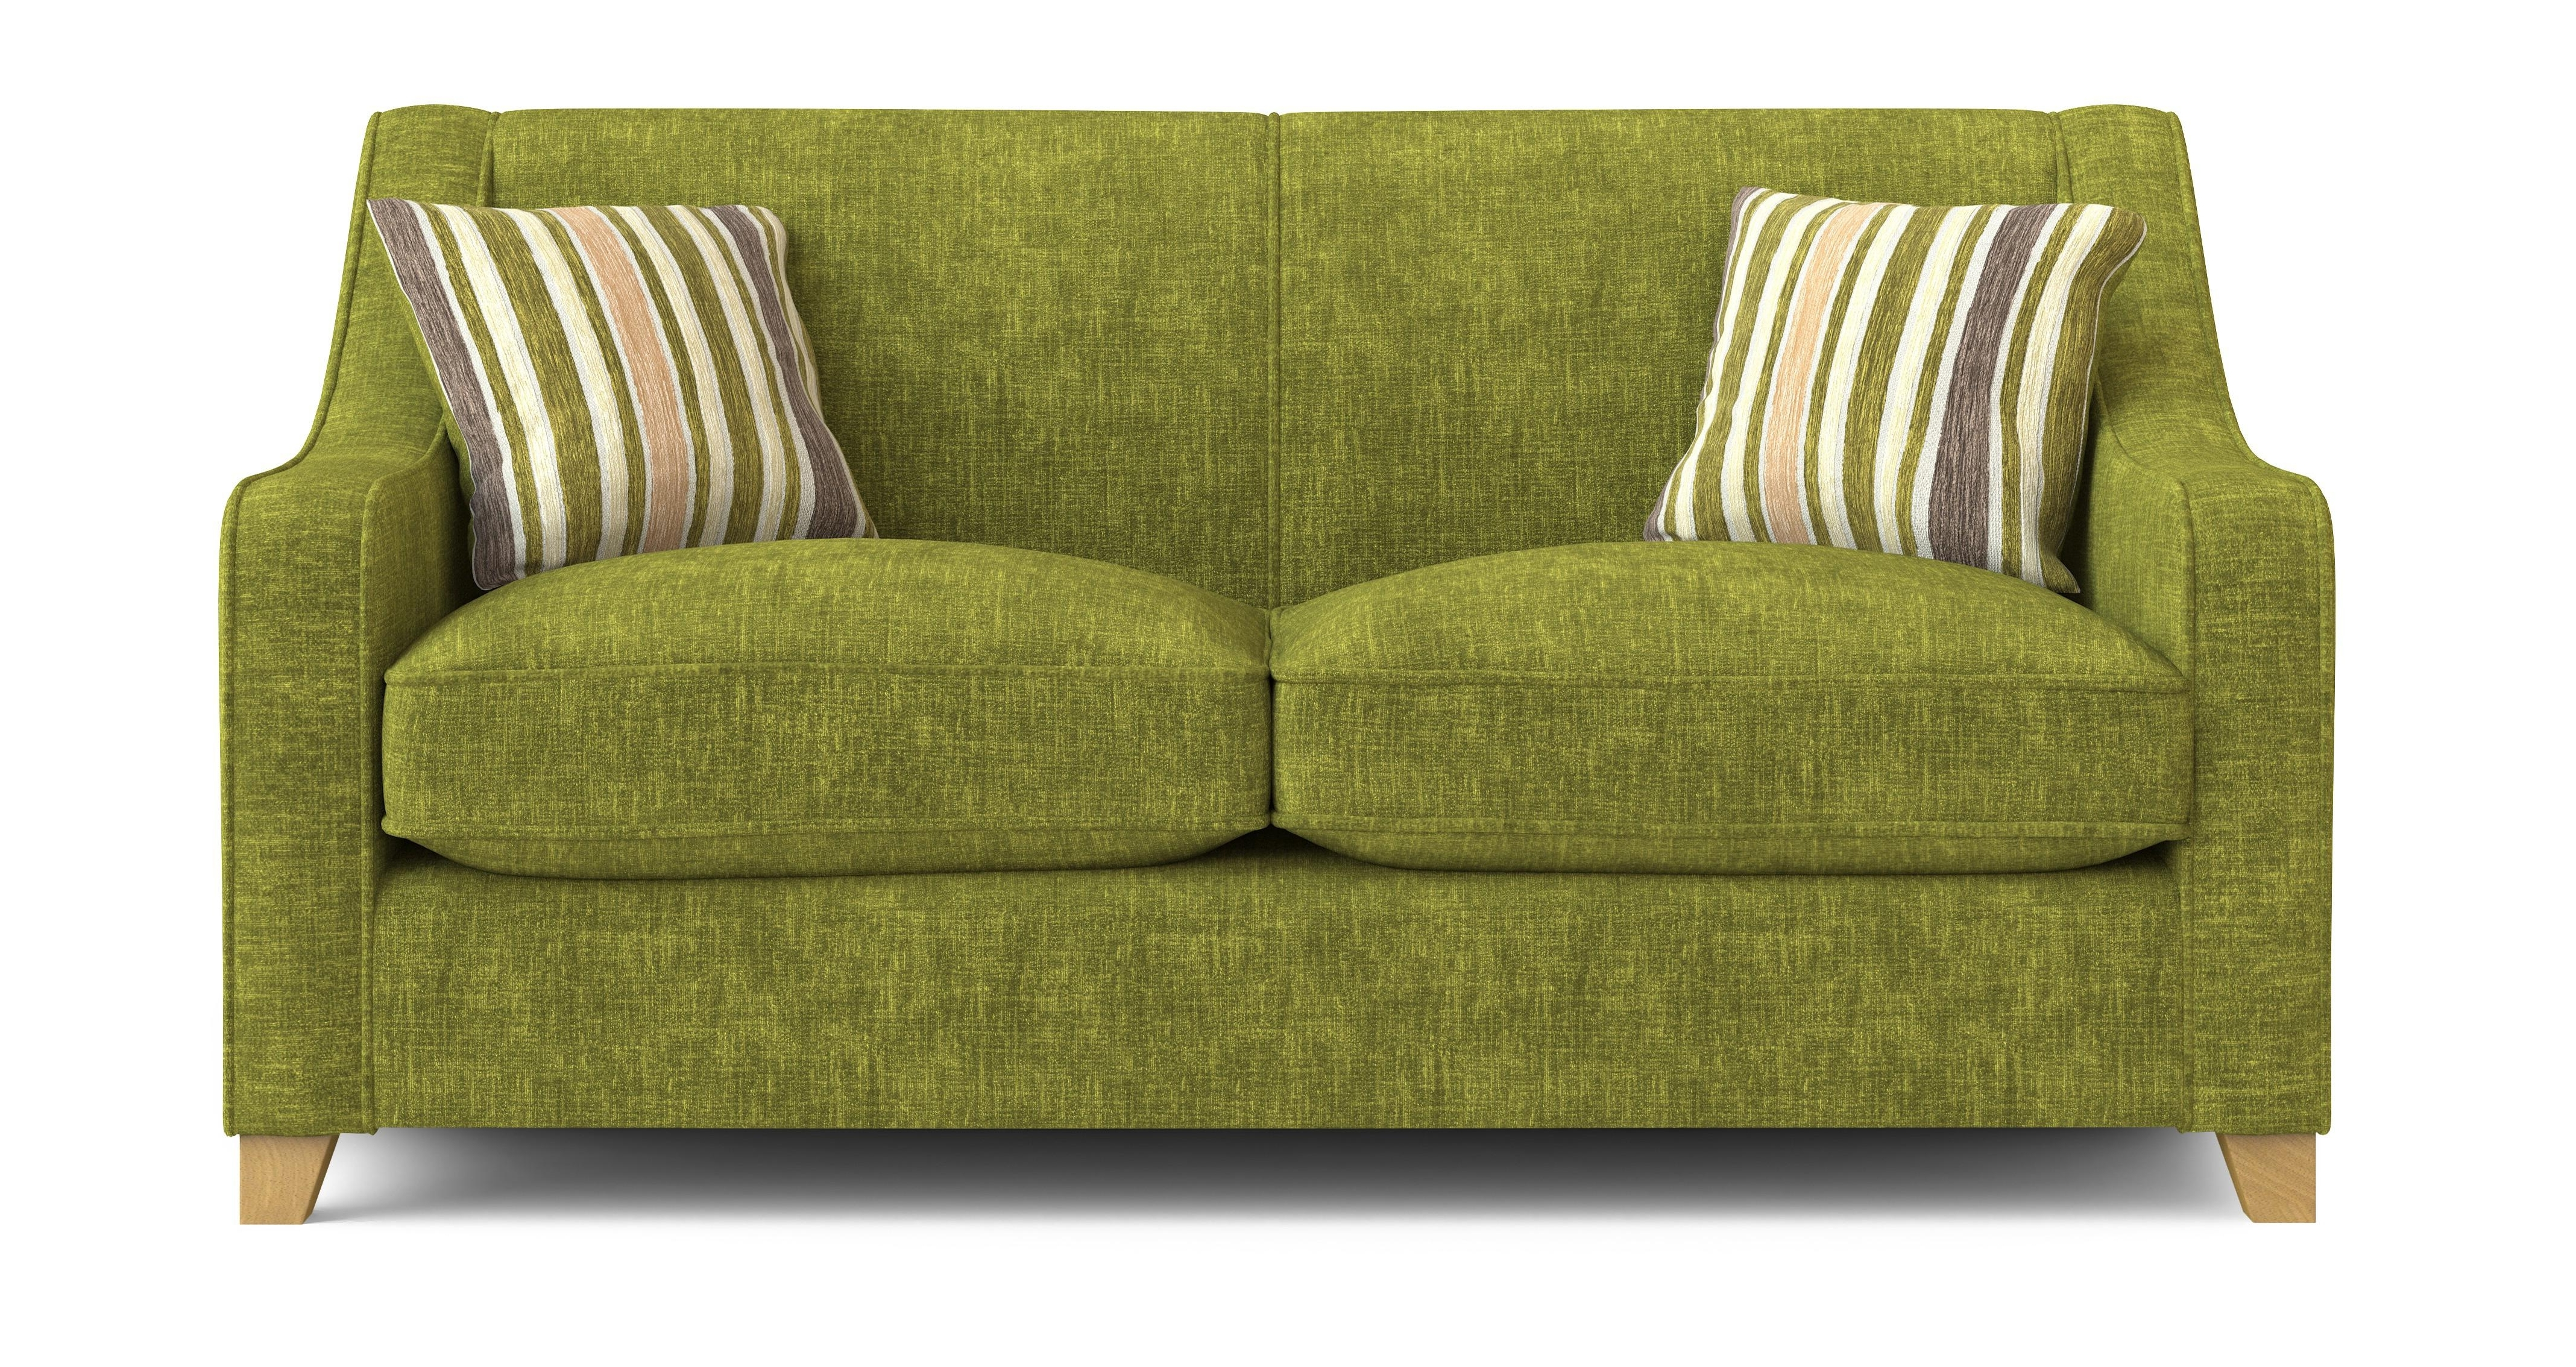 Epic Small 2 Seater Sofa 90 On Modern Sofa Ideas With Small 2 In Most Current Small 2 Seater Sofas (View 5 of 20)